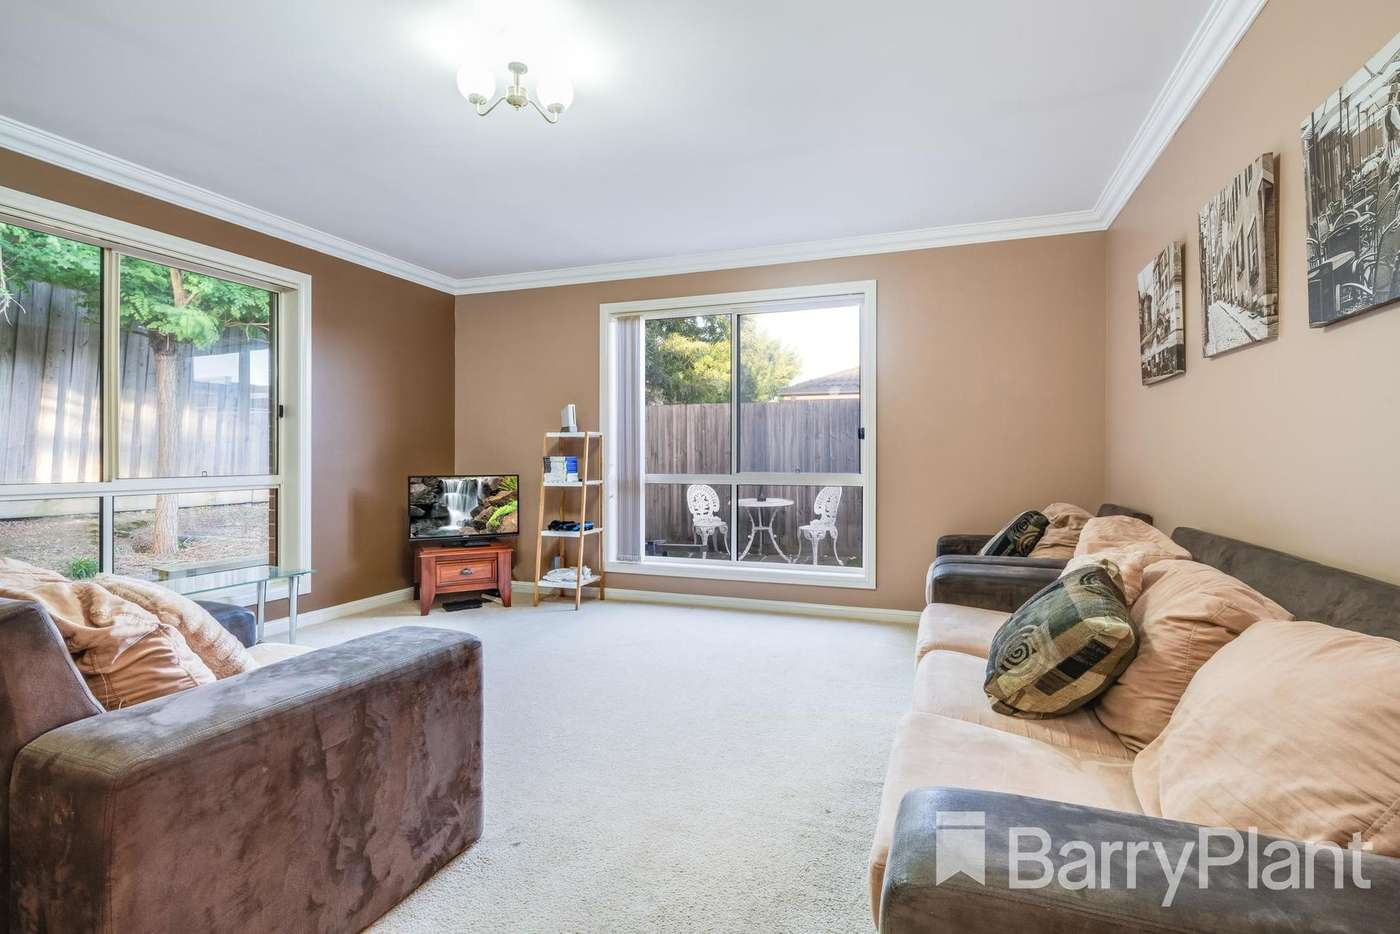 Fifth view of Homely house listing, 47 Daly Boulevard, Highton VIC 3216